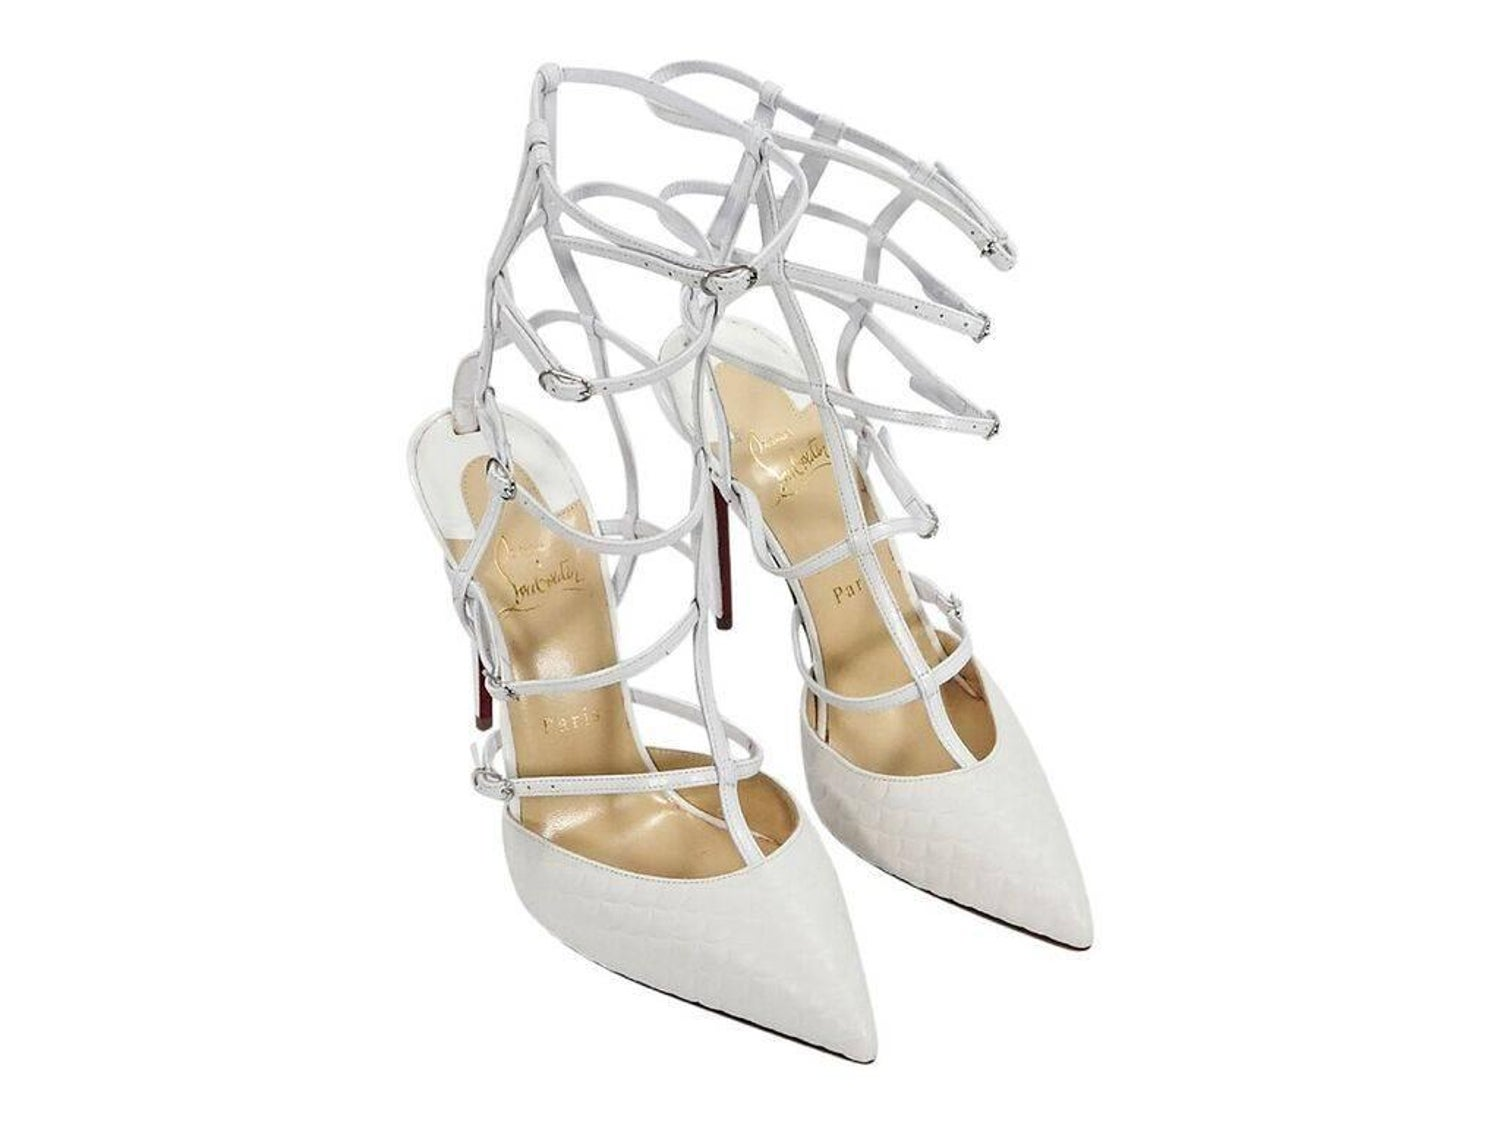 1451ff3a6799 Latte Christian Louboutin Kadreyana 100mm Cage Sandals For Sale at 1stdibs